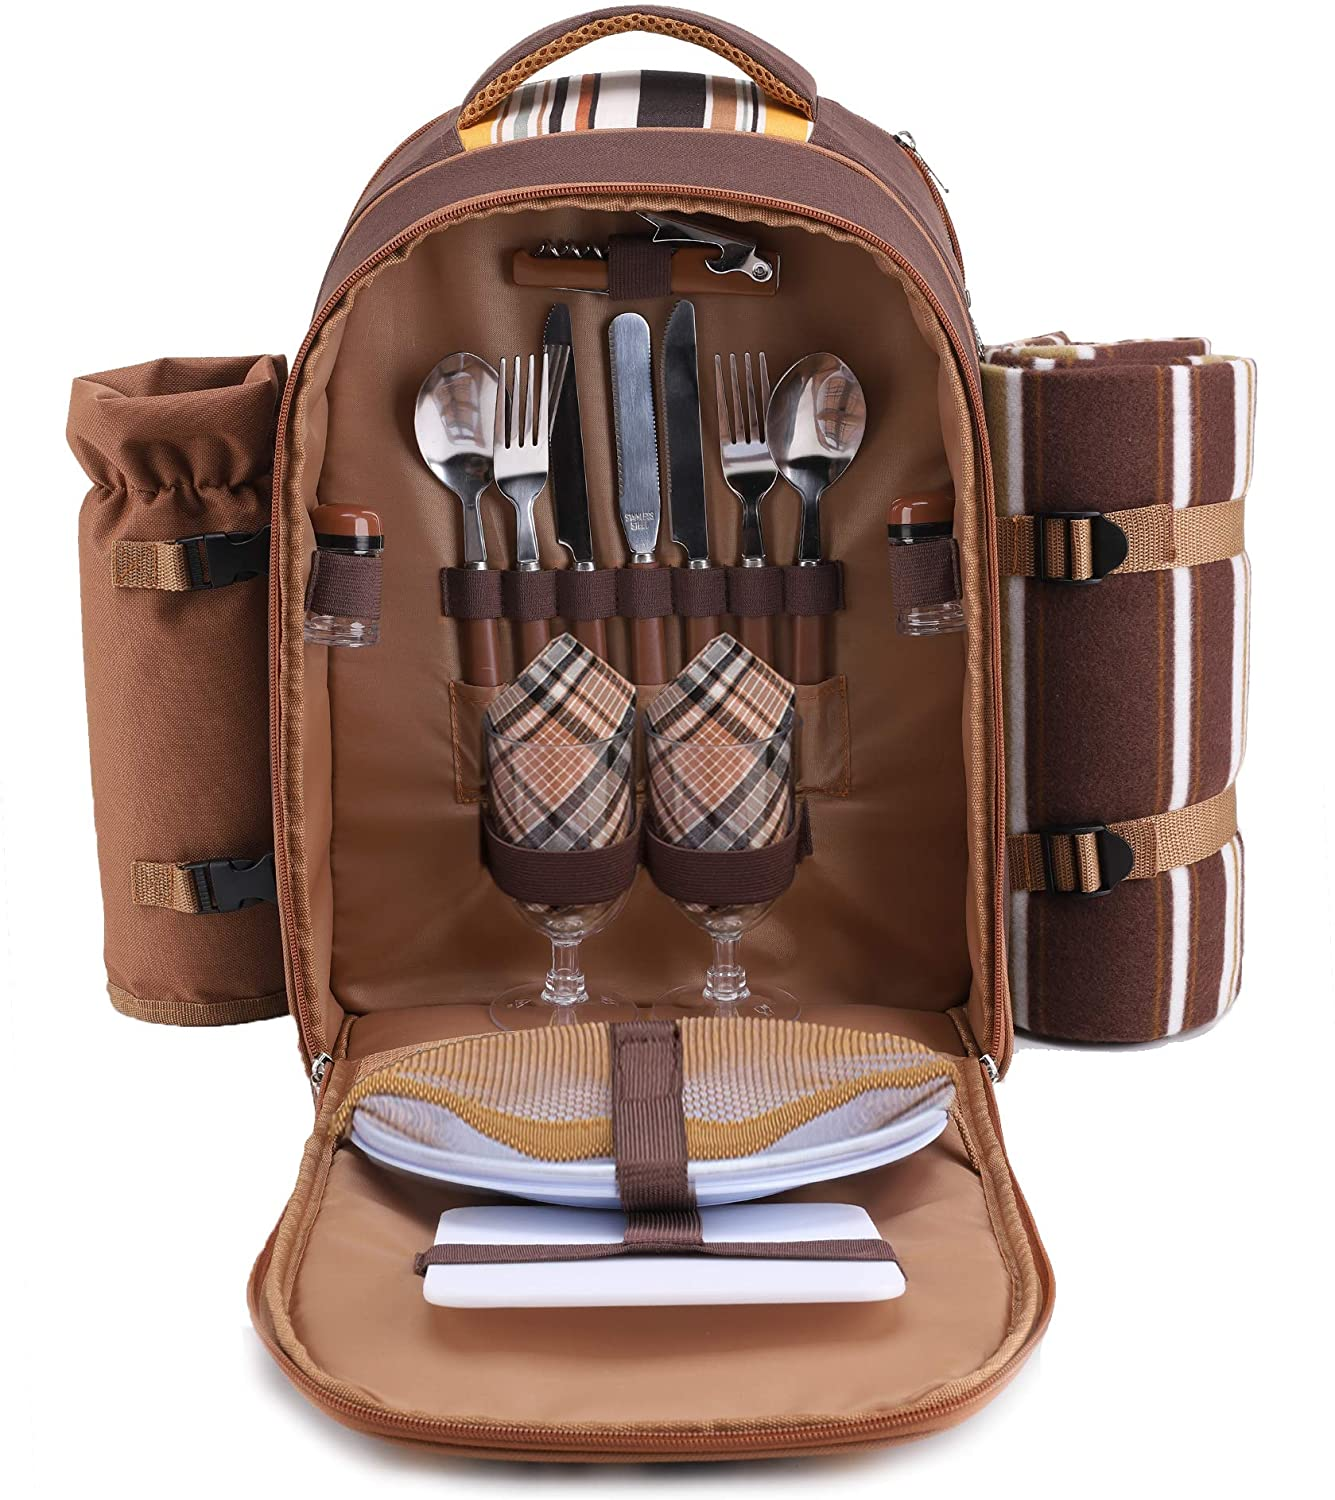 40th-birthday-gift-ideas-backpack